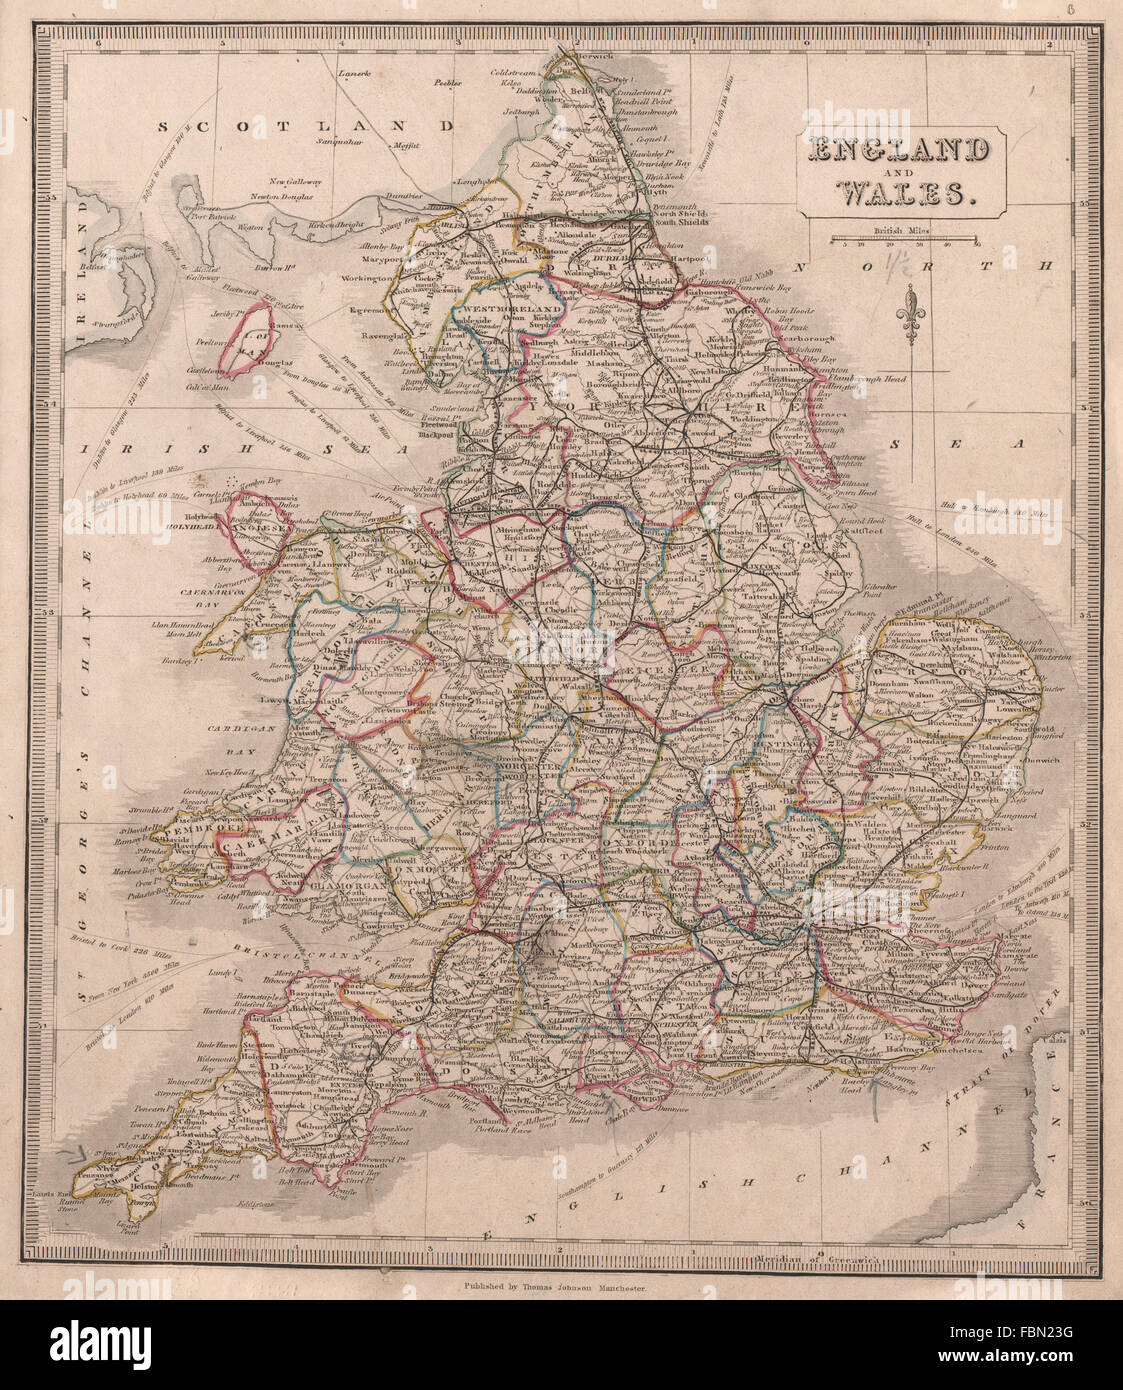 Map Of England And Wales Showing Counties.England Wales Showing Counties Railways Original Colour